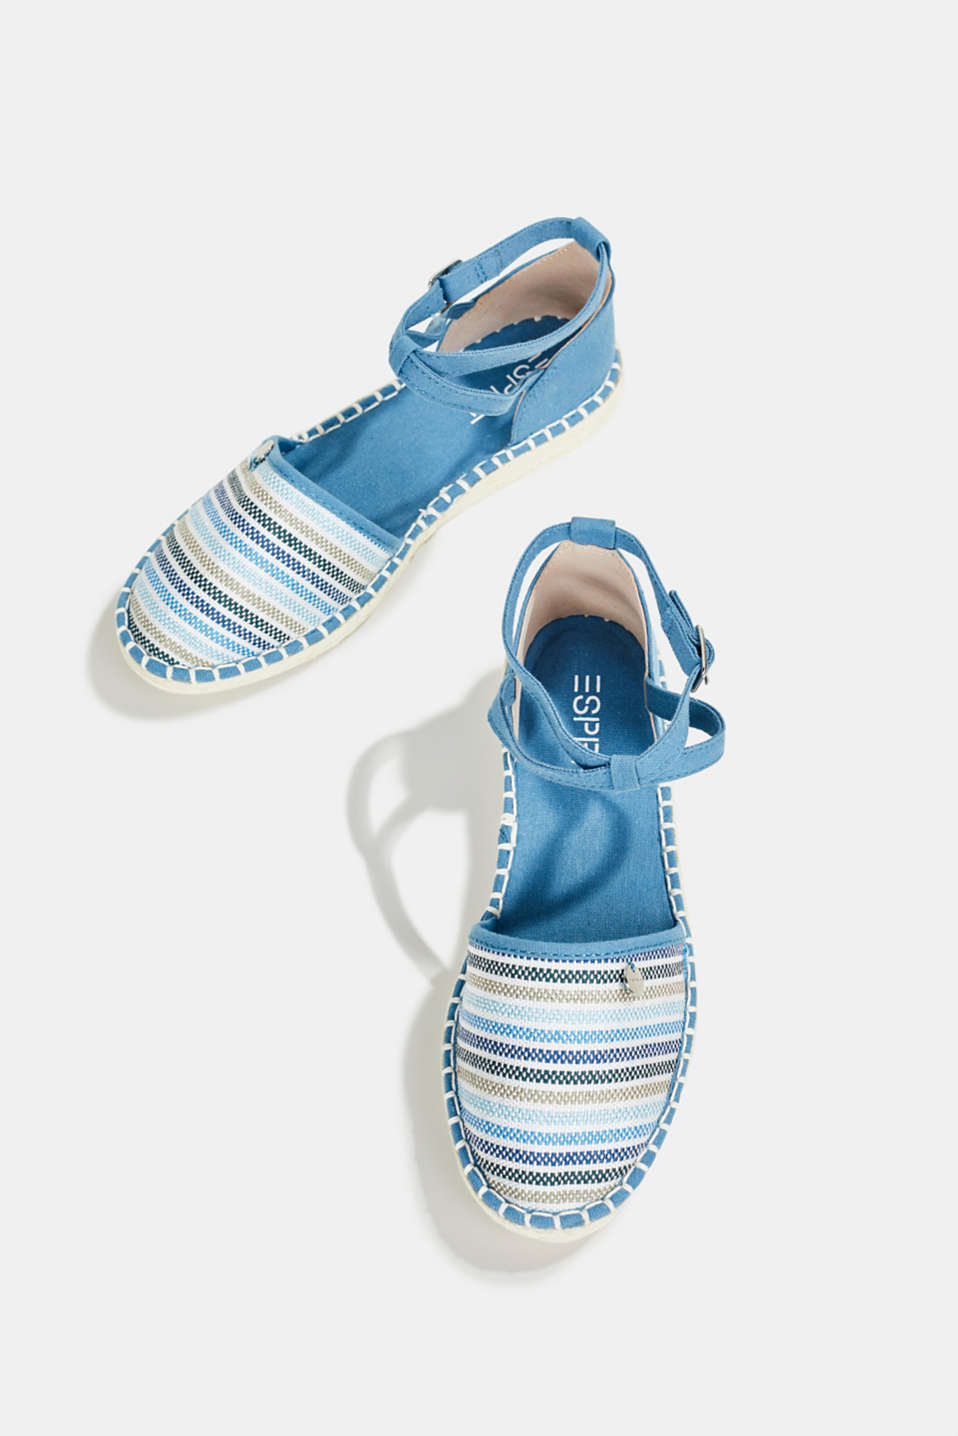 Espadrille sandals with stripes, GREY BLUE, detail image number 1